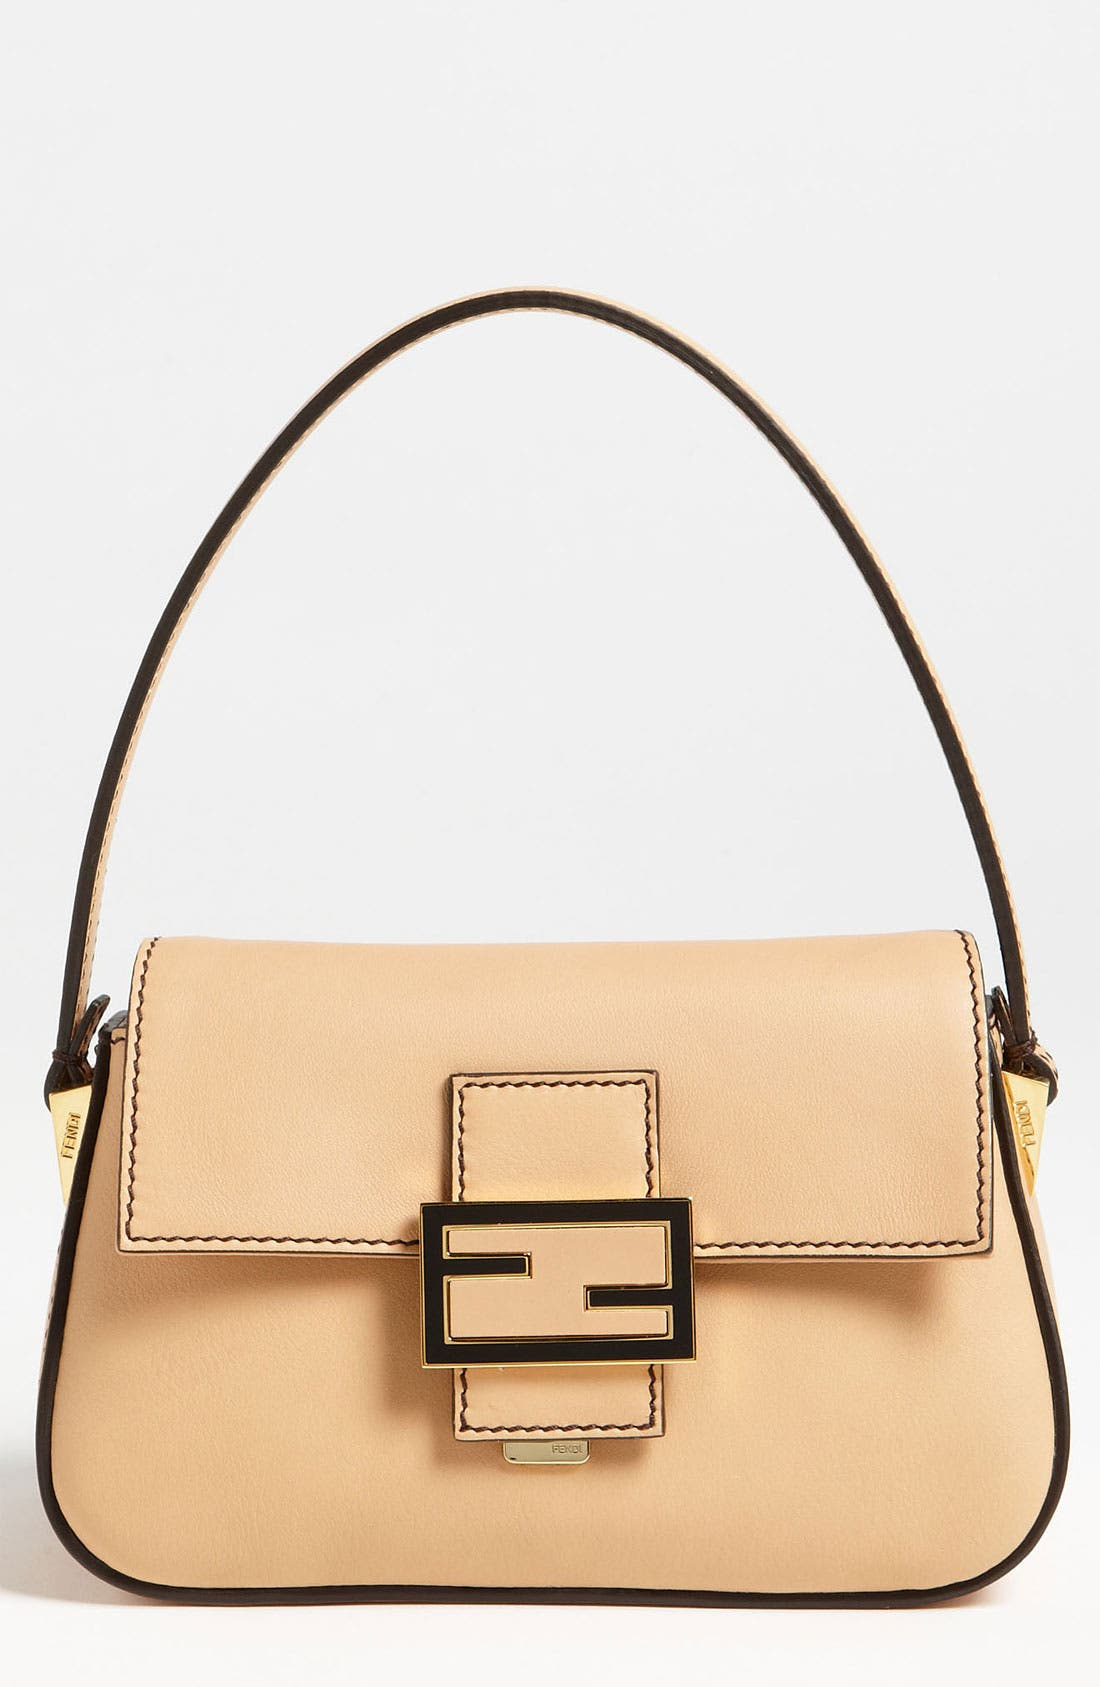 Alternate Image 1 Selected - Fendi 'Mamma - Mini' Leather Shoulder Bag